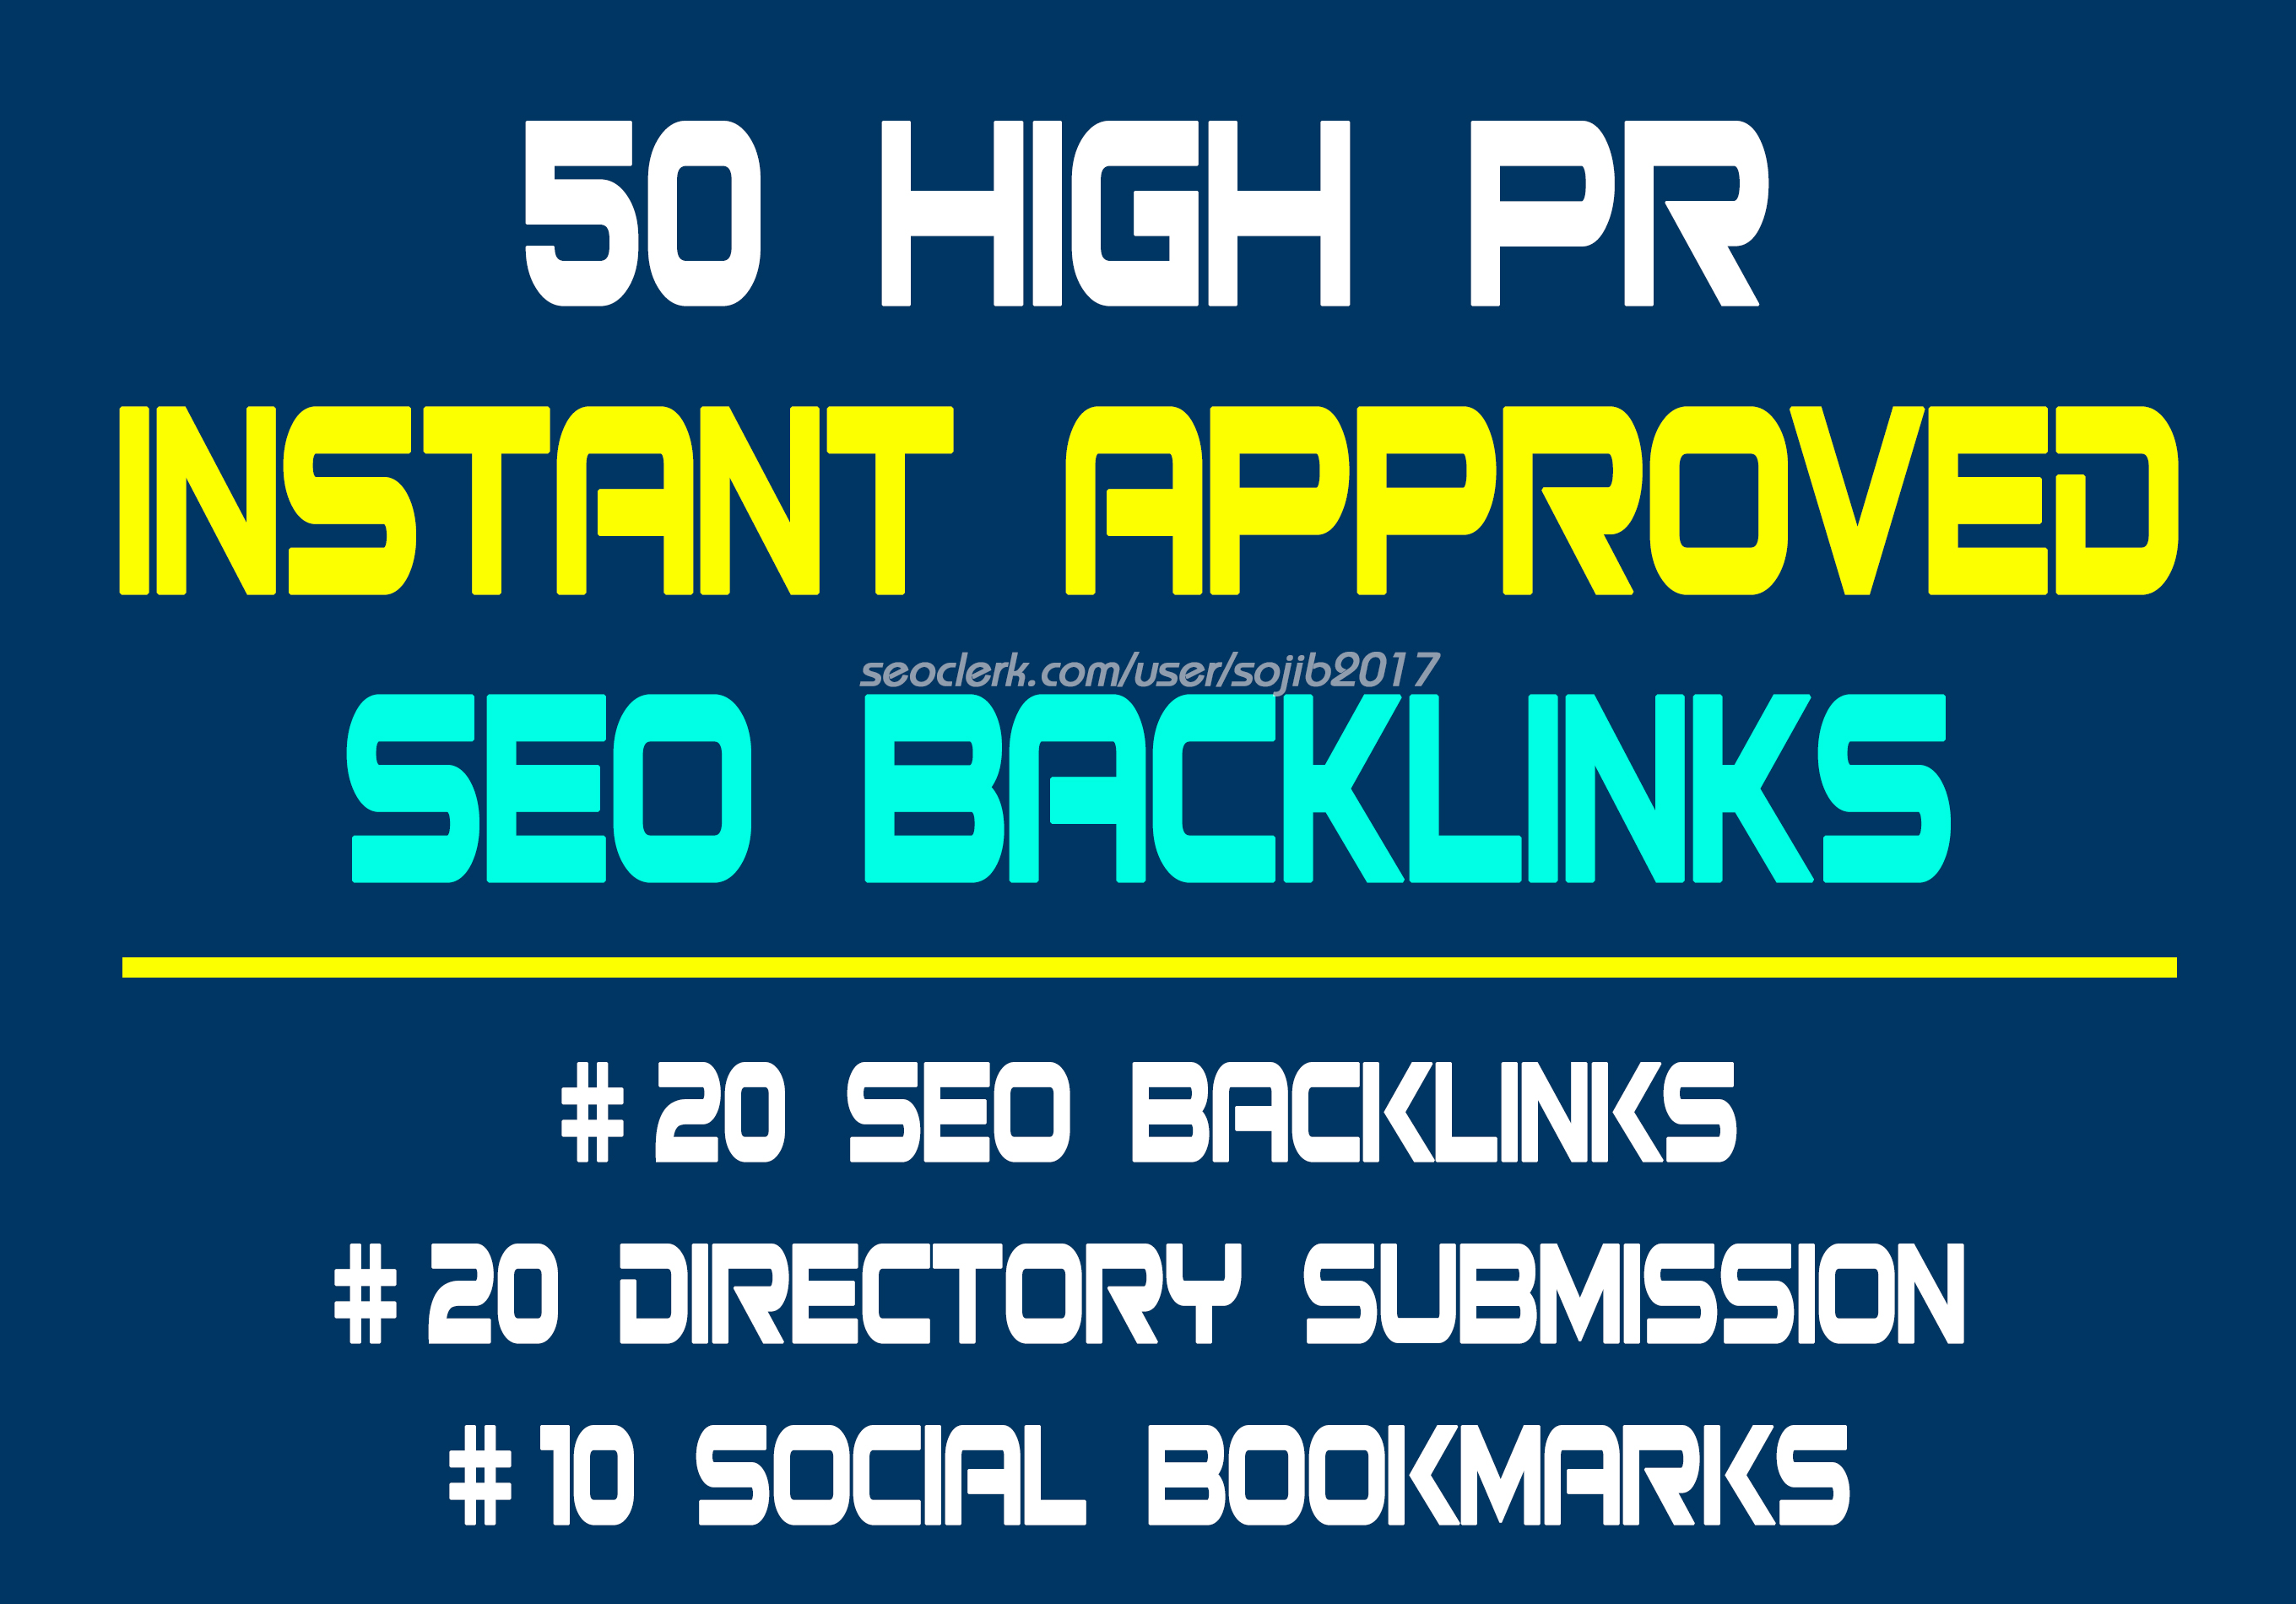 50 Instant approved SEO Backlinks in just 24 Hours